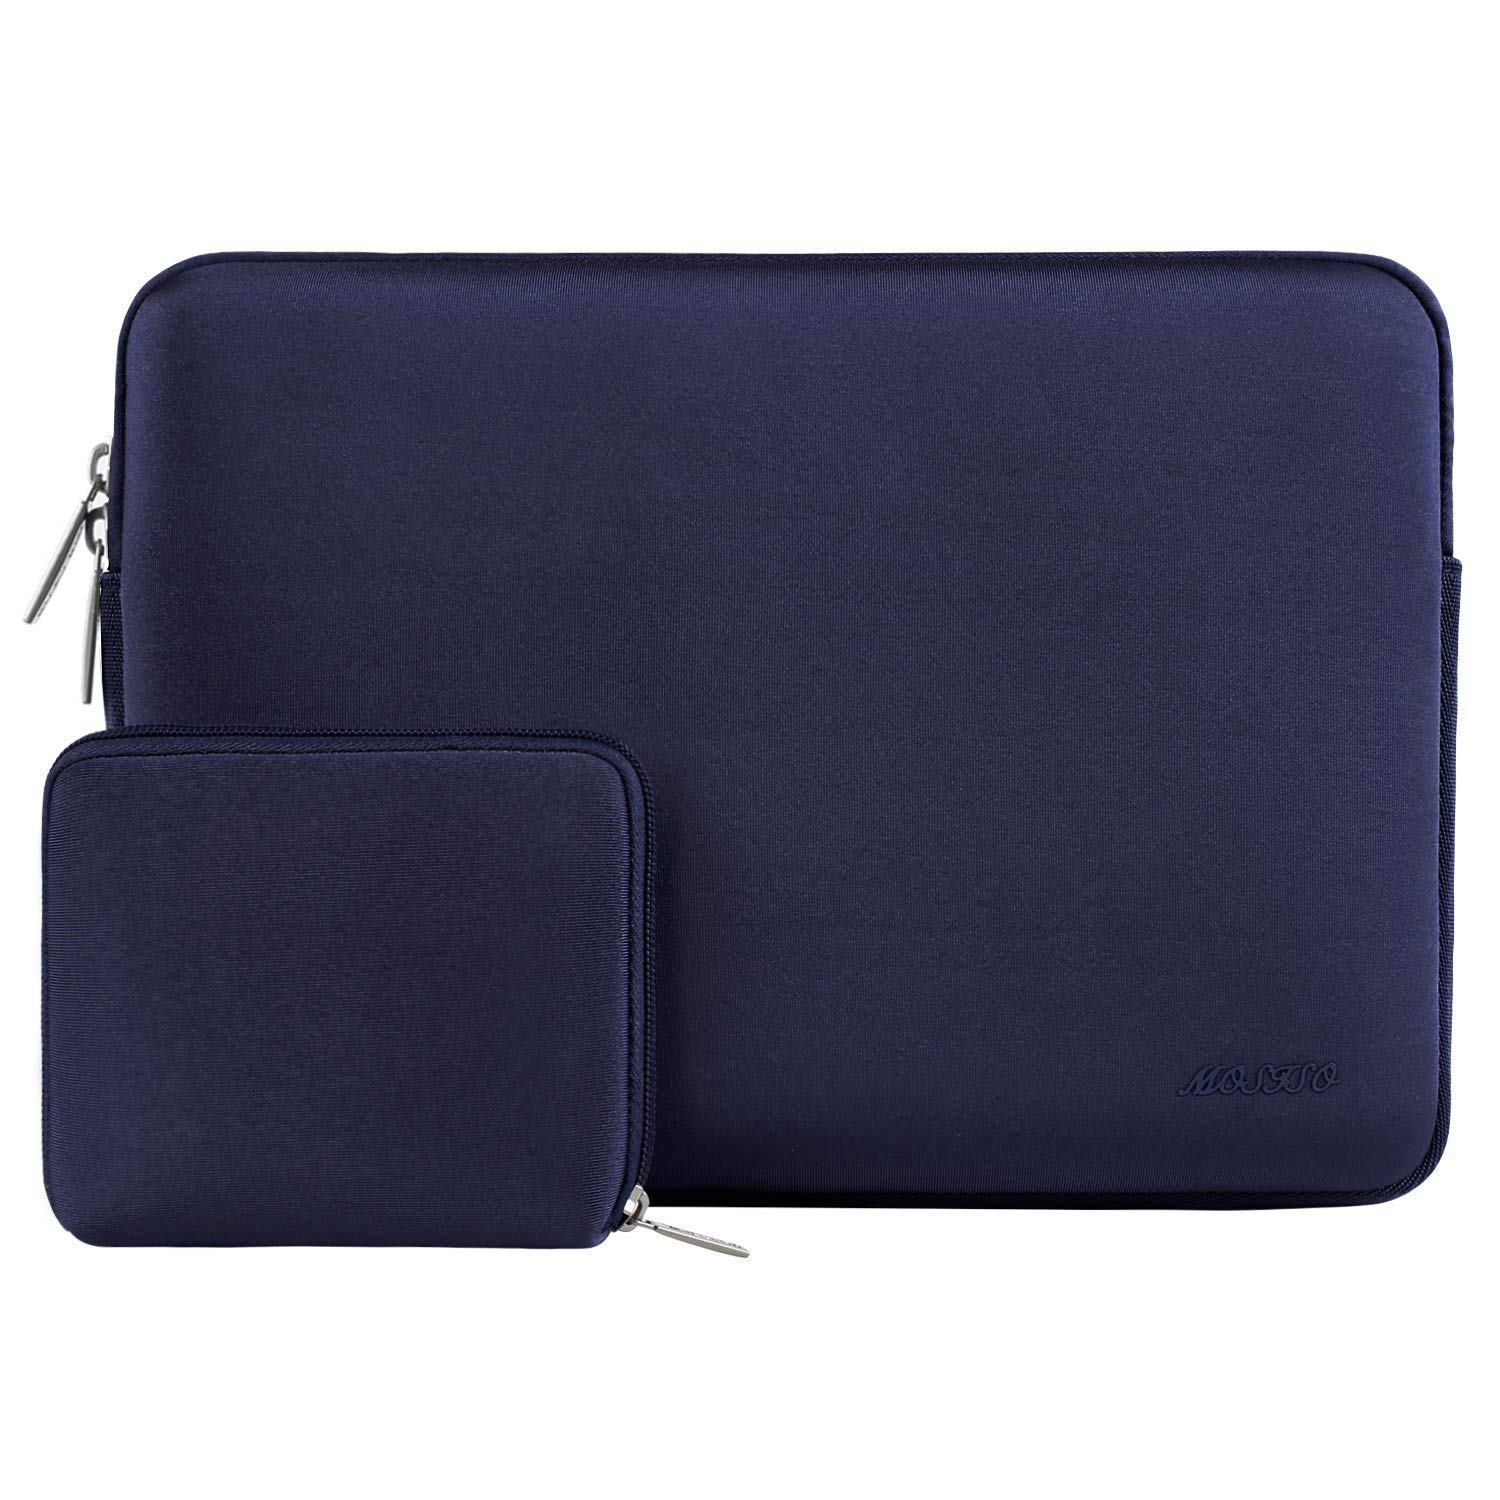 MOSISO Laptop Sleeve Compatible 2018 MacBook Air 13 A1932 Retina Display/MacBook Pro 13 A1989 A1706 A1708 USB-C 2018 2017 2016/Surface Pro 6,Water Repellent Neoprene Bag with Small Case,Navy Blue